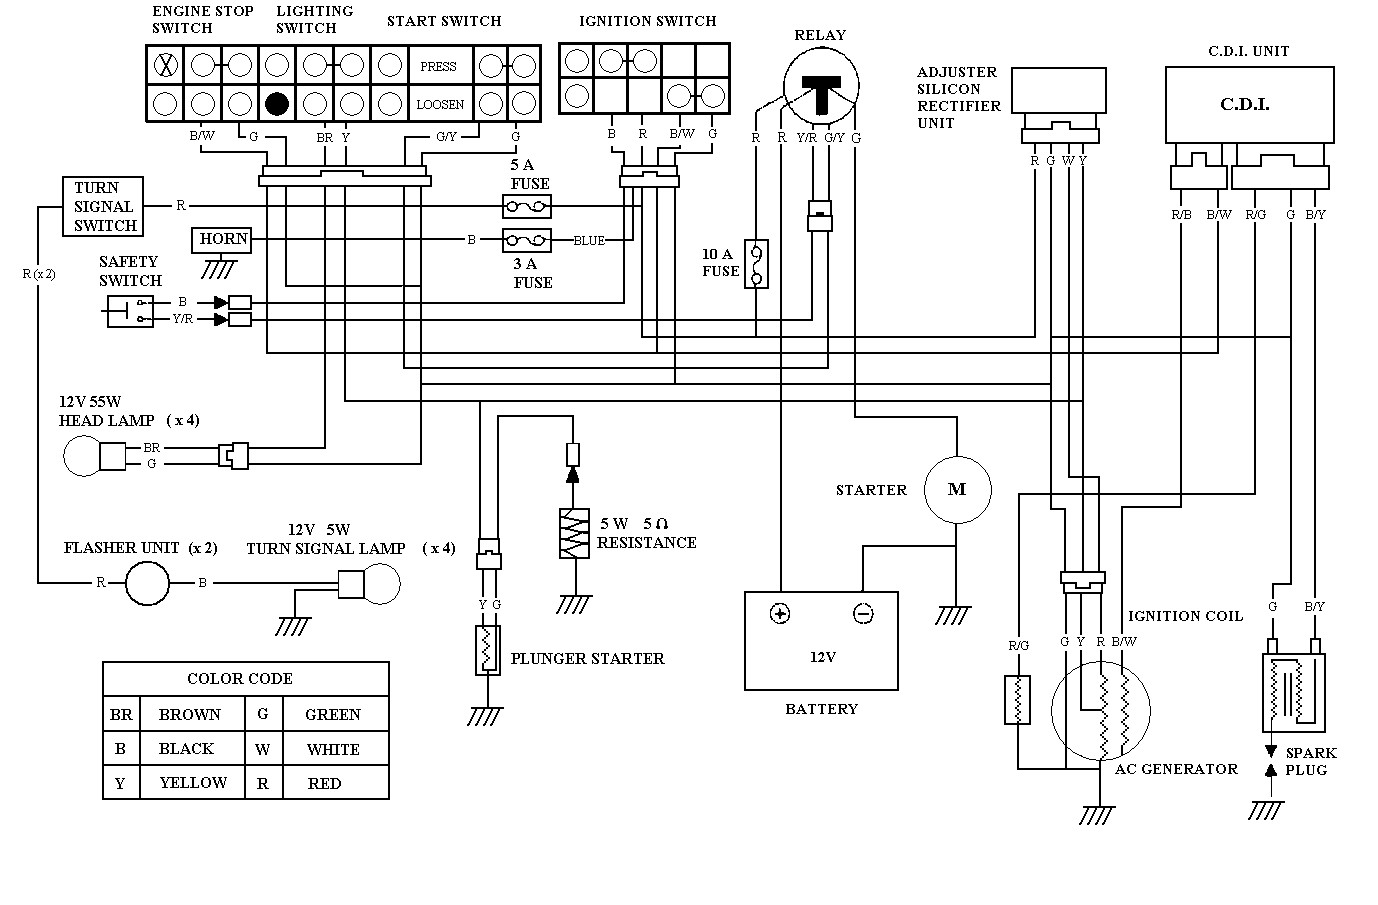 chevrolet 350 electric choke wiring library of wiring diagrams \u2022  edelbrock carburetor electric choke wiring